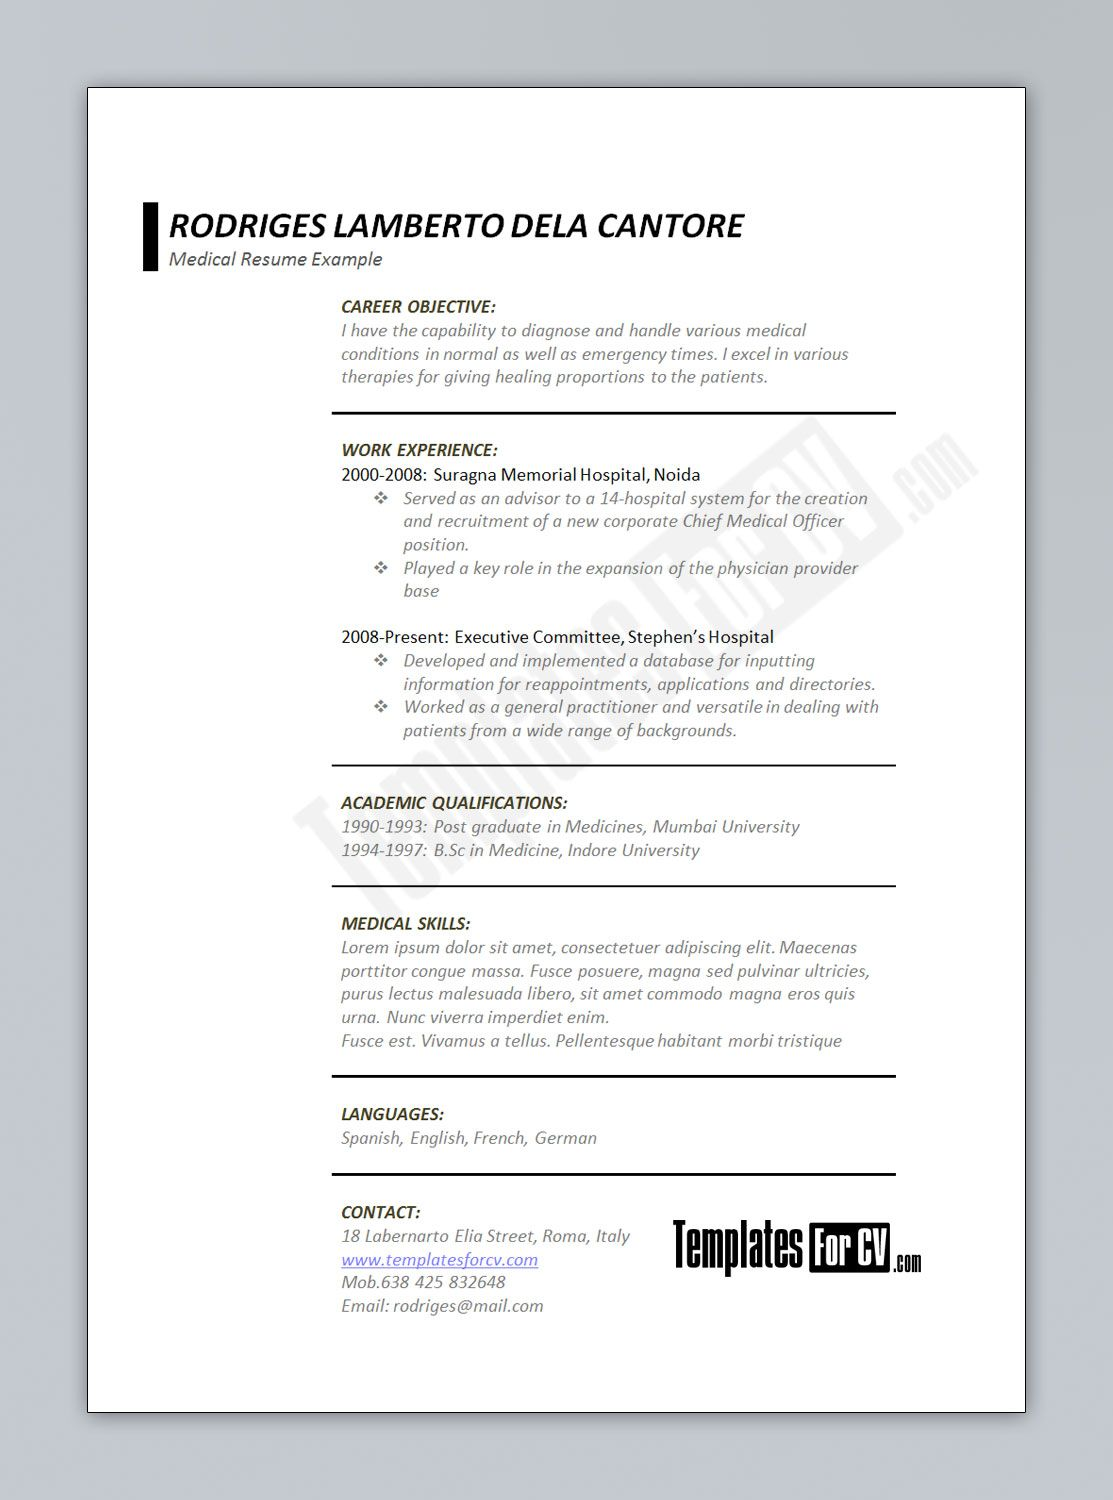 cv template university student resume curriculum vitae format this article discusses how to write and organize a medical cv template and provides a to resume template